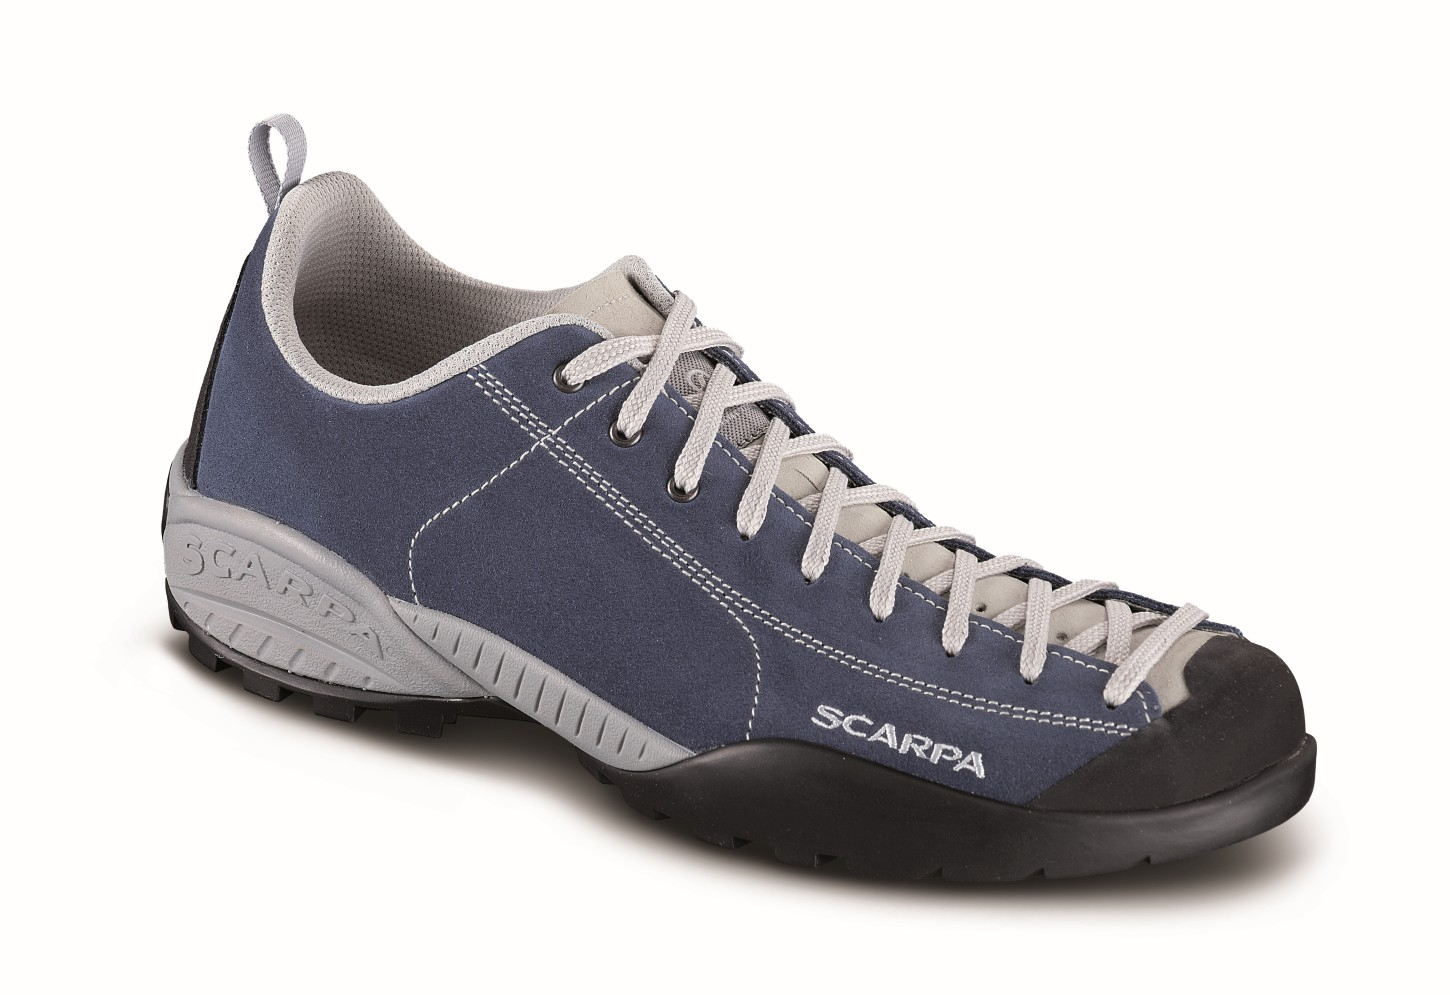 The Scarpa Shoes Modern Style walking Shoes Gray Running Shoes free shipping fast delivery cheap sale 100% guaranteed jiT1e1AKyh